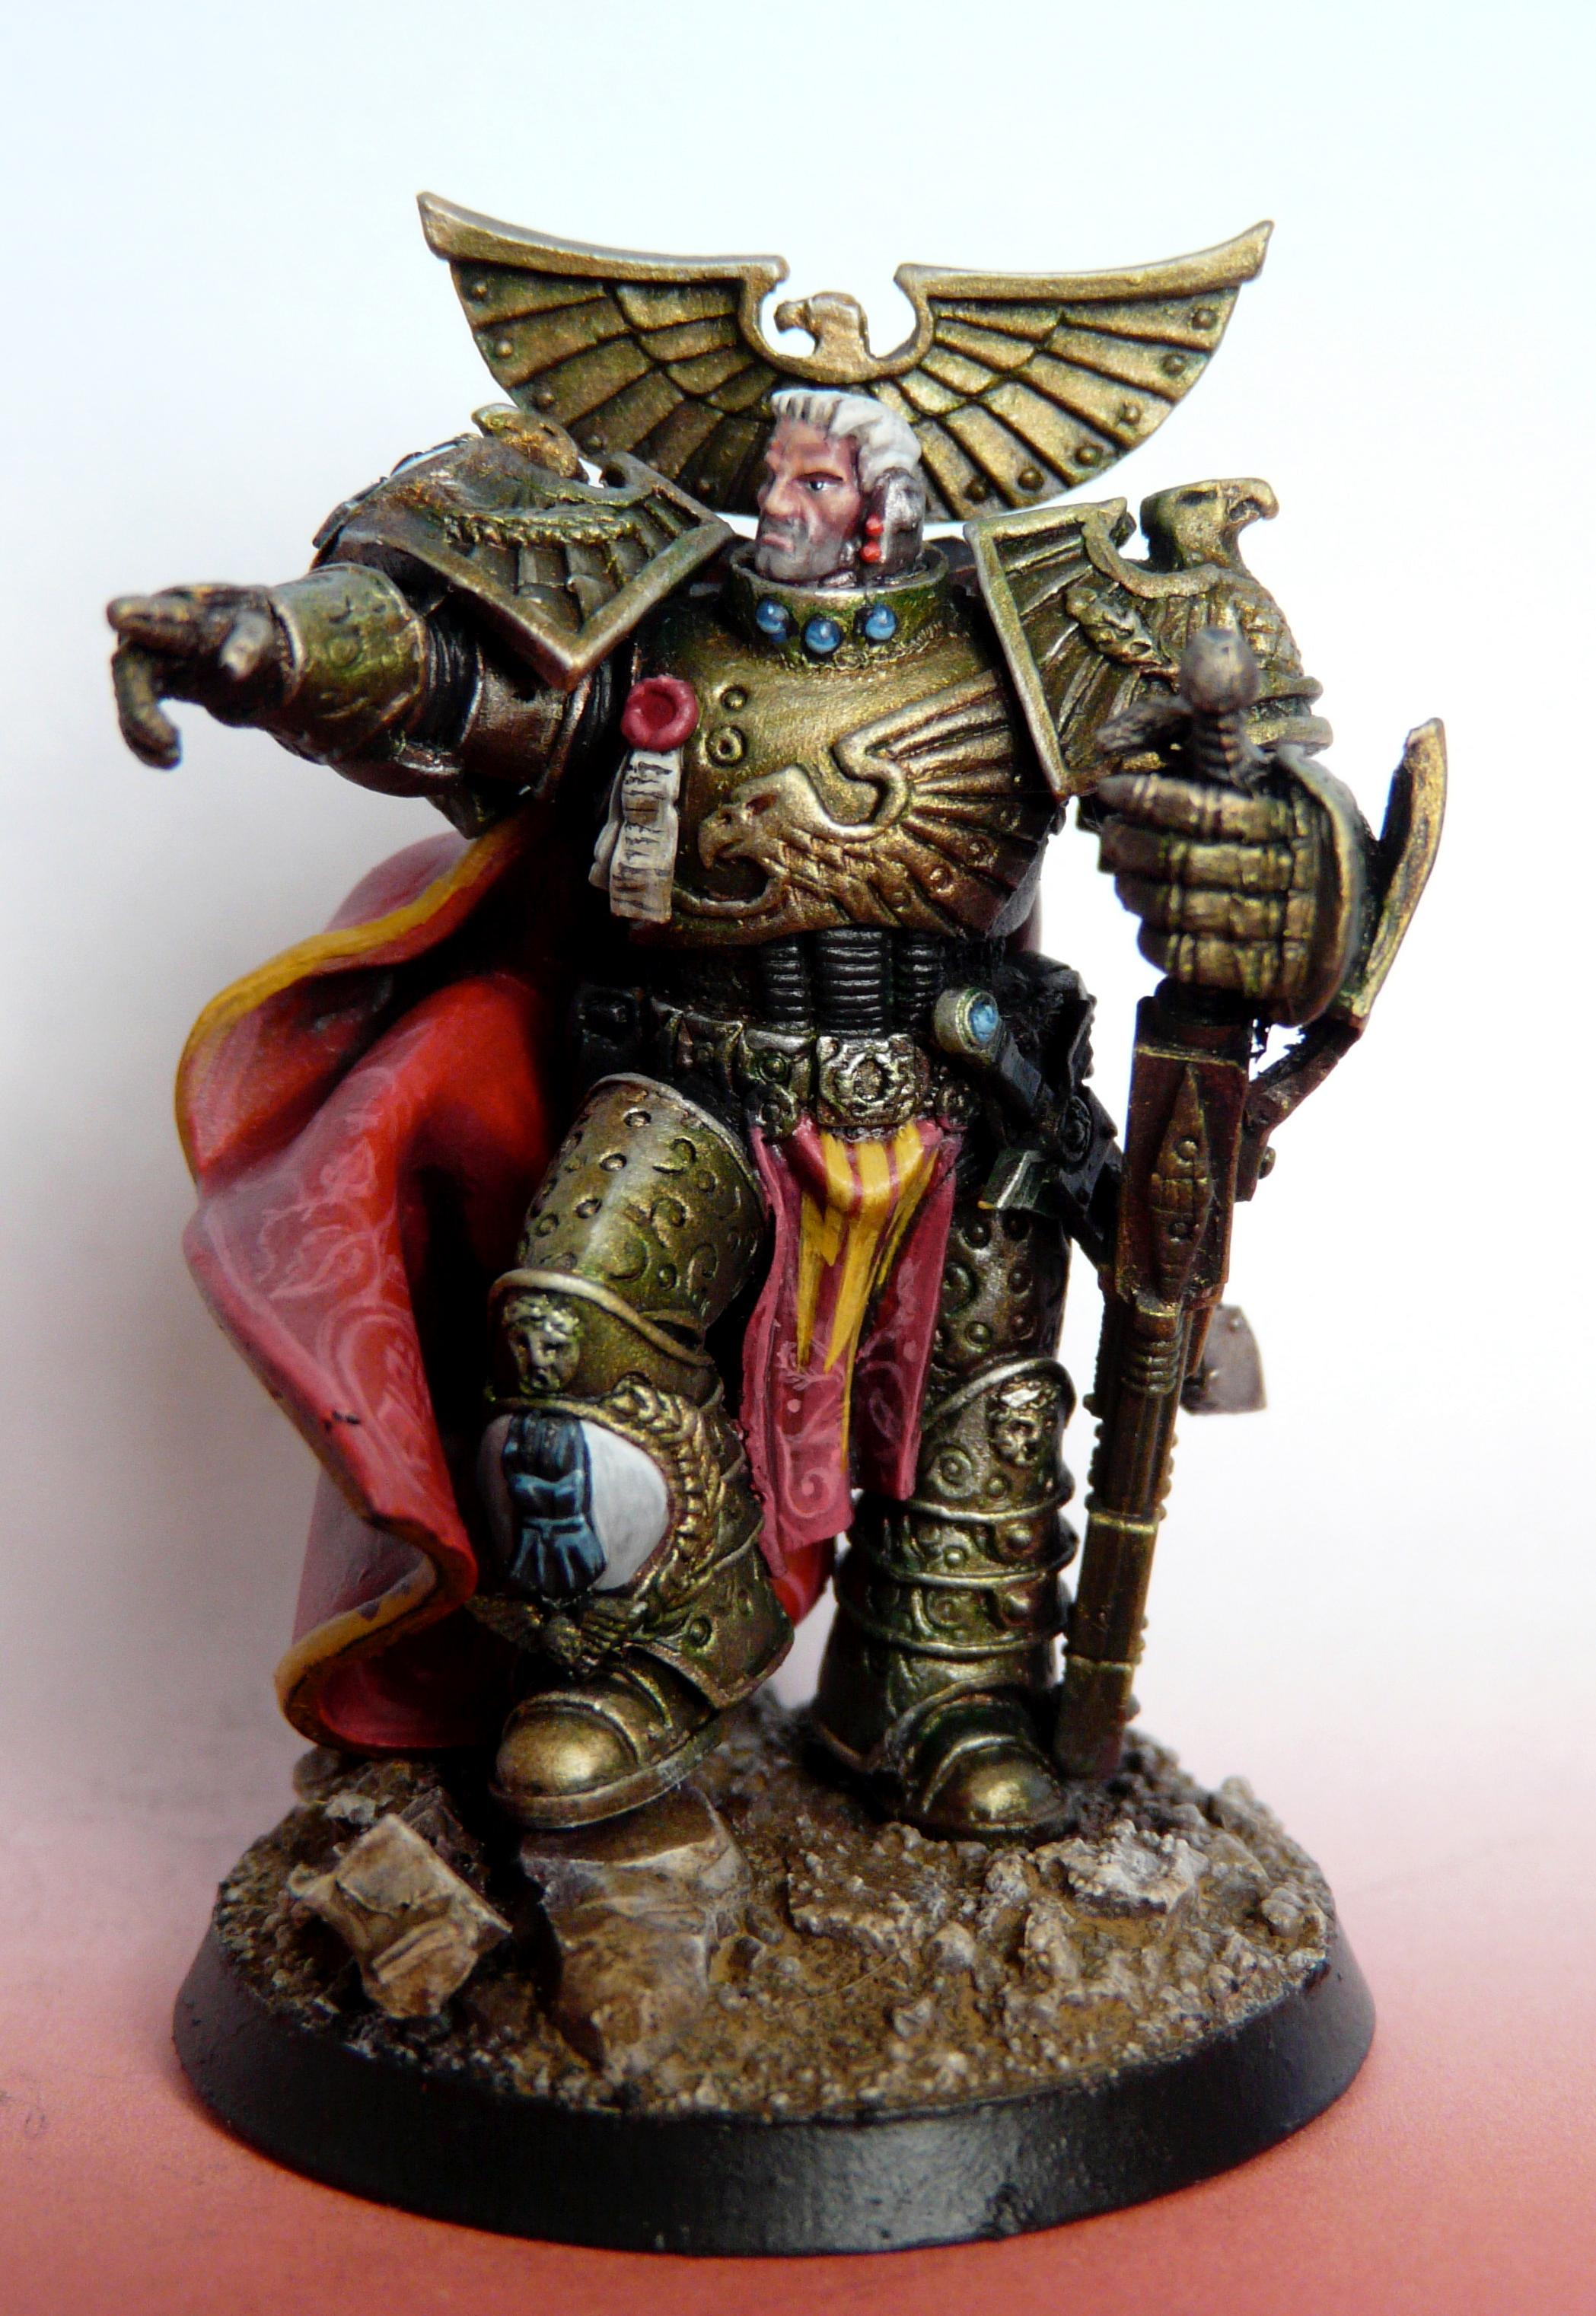 Horus Heresy, Imperial Fists, Primarch, Rogal Dorn